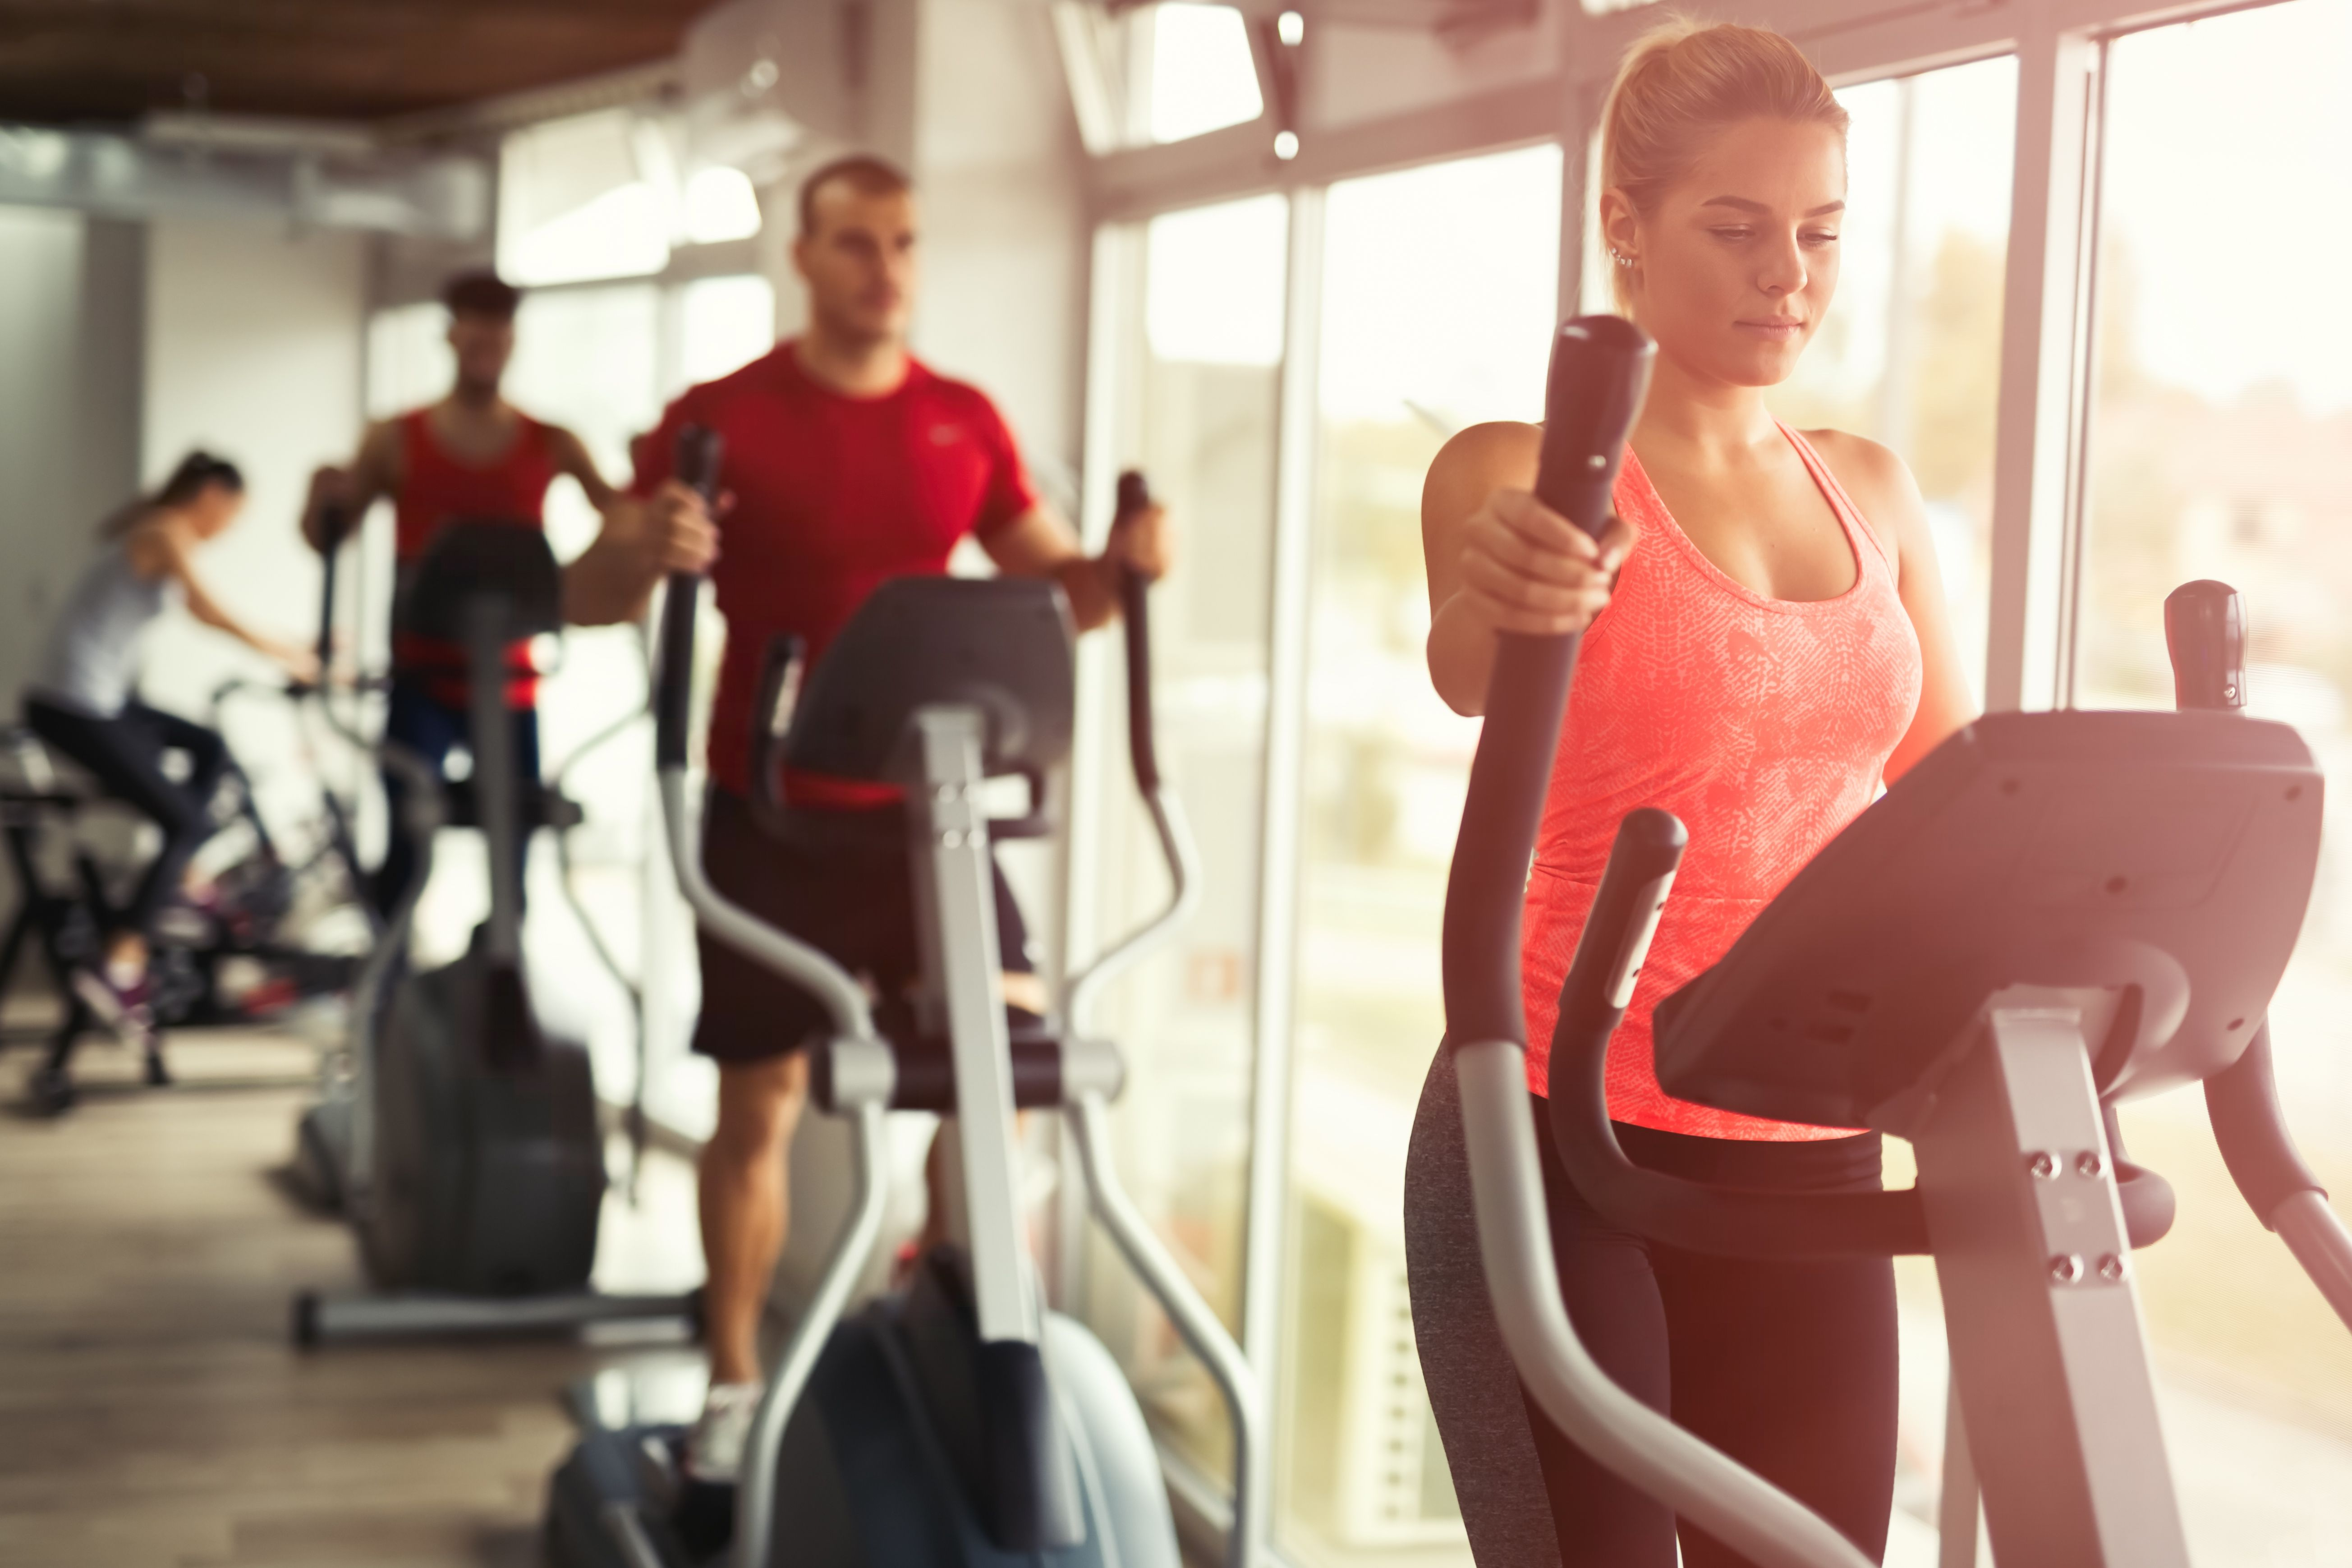 10 Best Ellipticals to Buy for Your Home Gym in 2019, According to Reviewers